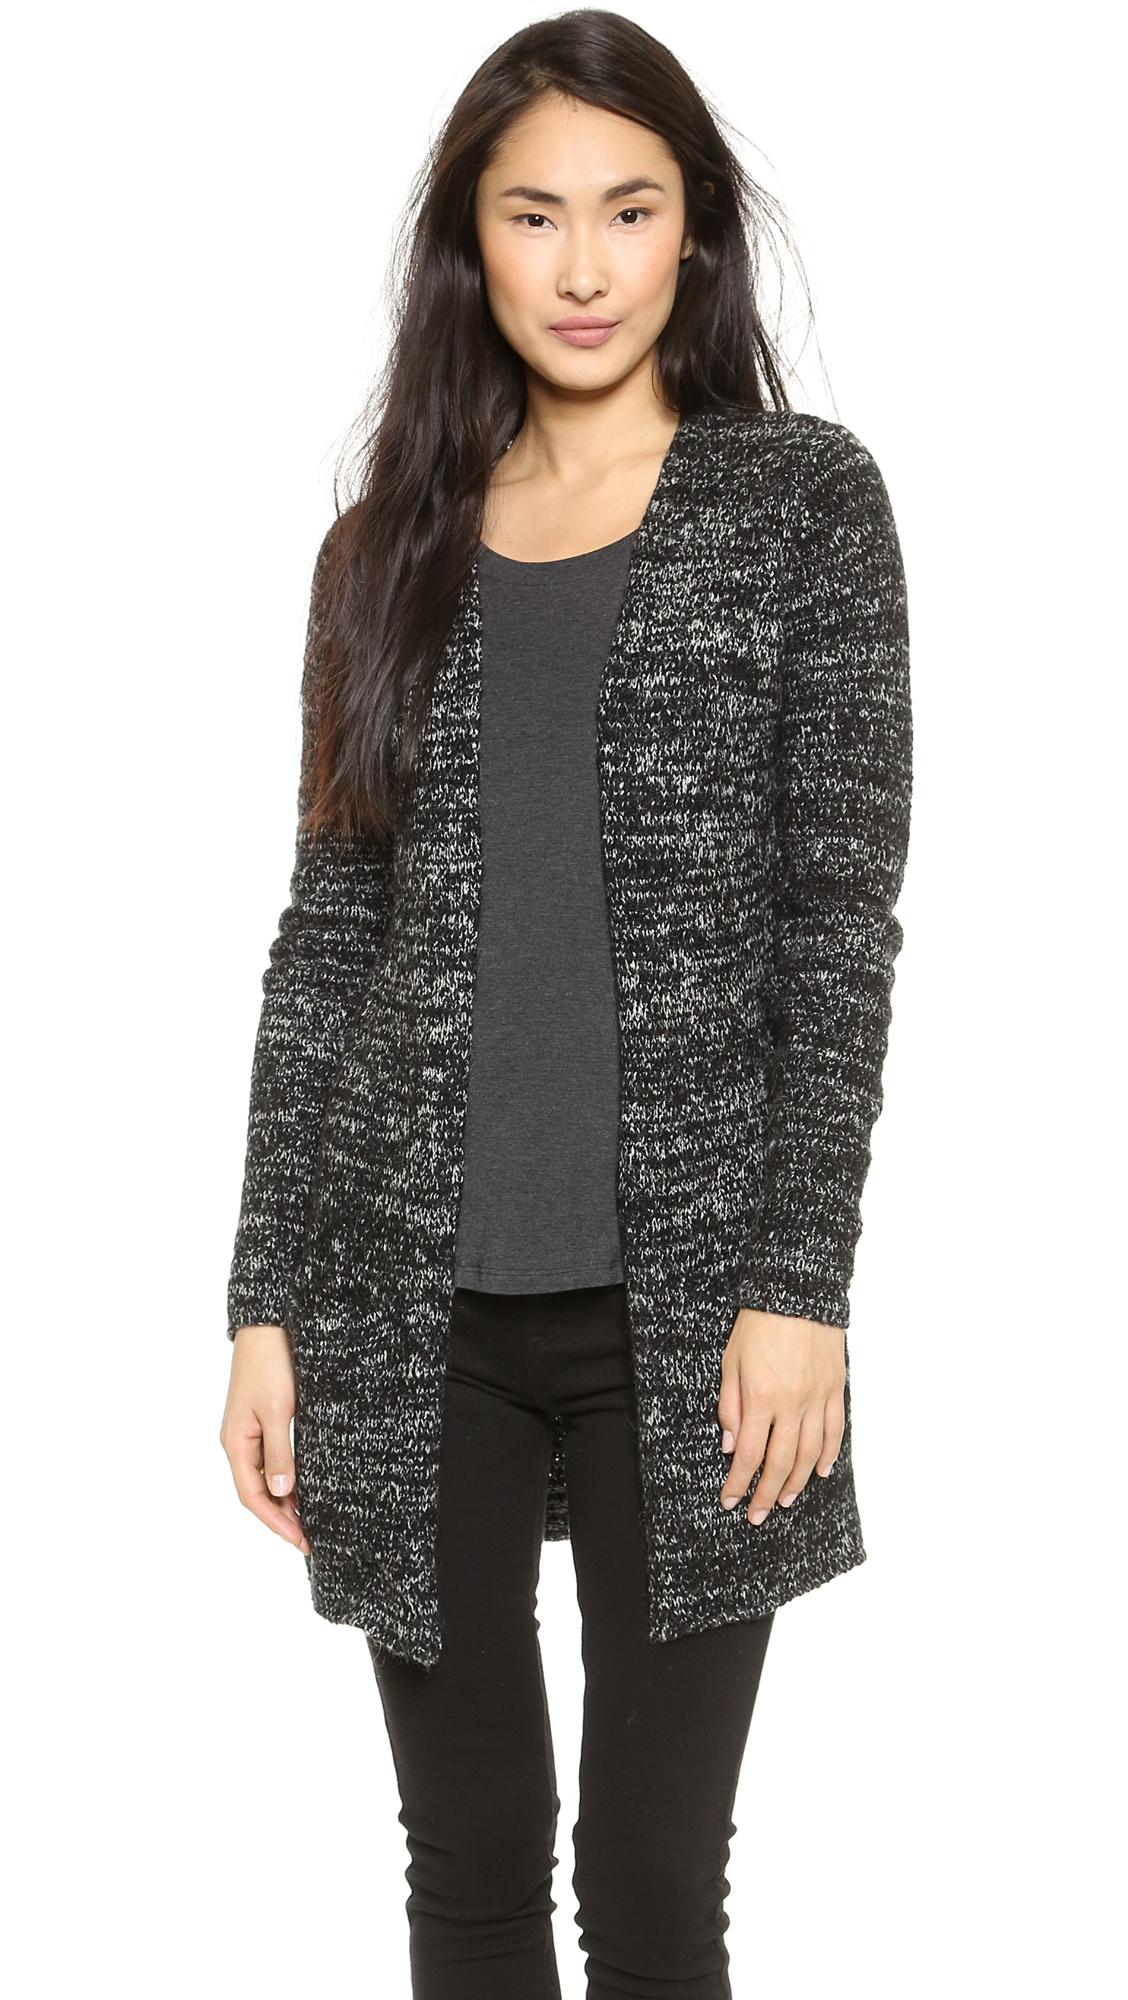 Enza costa Boucle Sweater Coat - Black Nebula in Black | Lyst